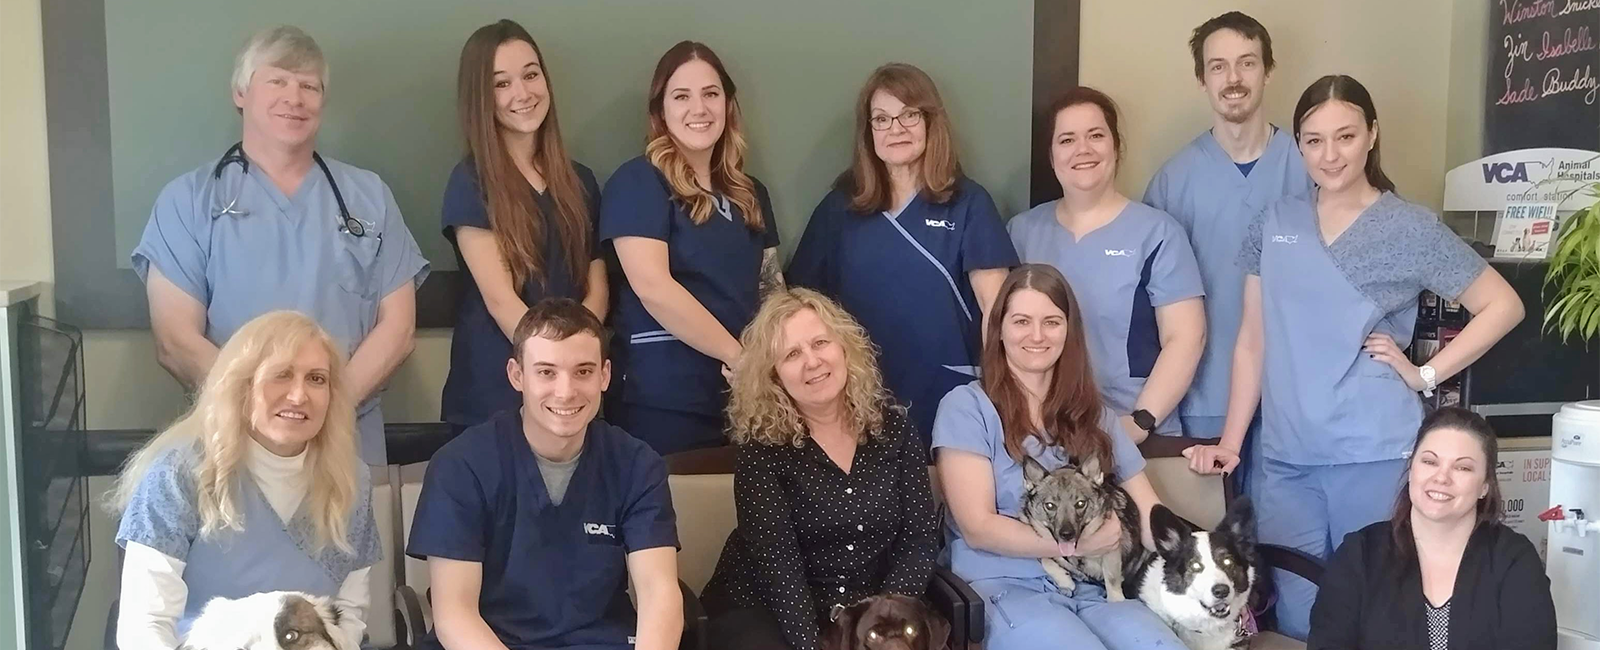 Homepage Team Picture of VCA Rotherwood Animal Hospital